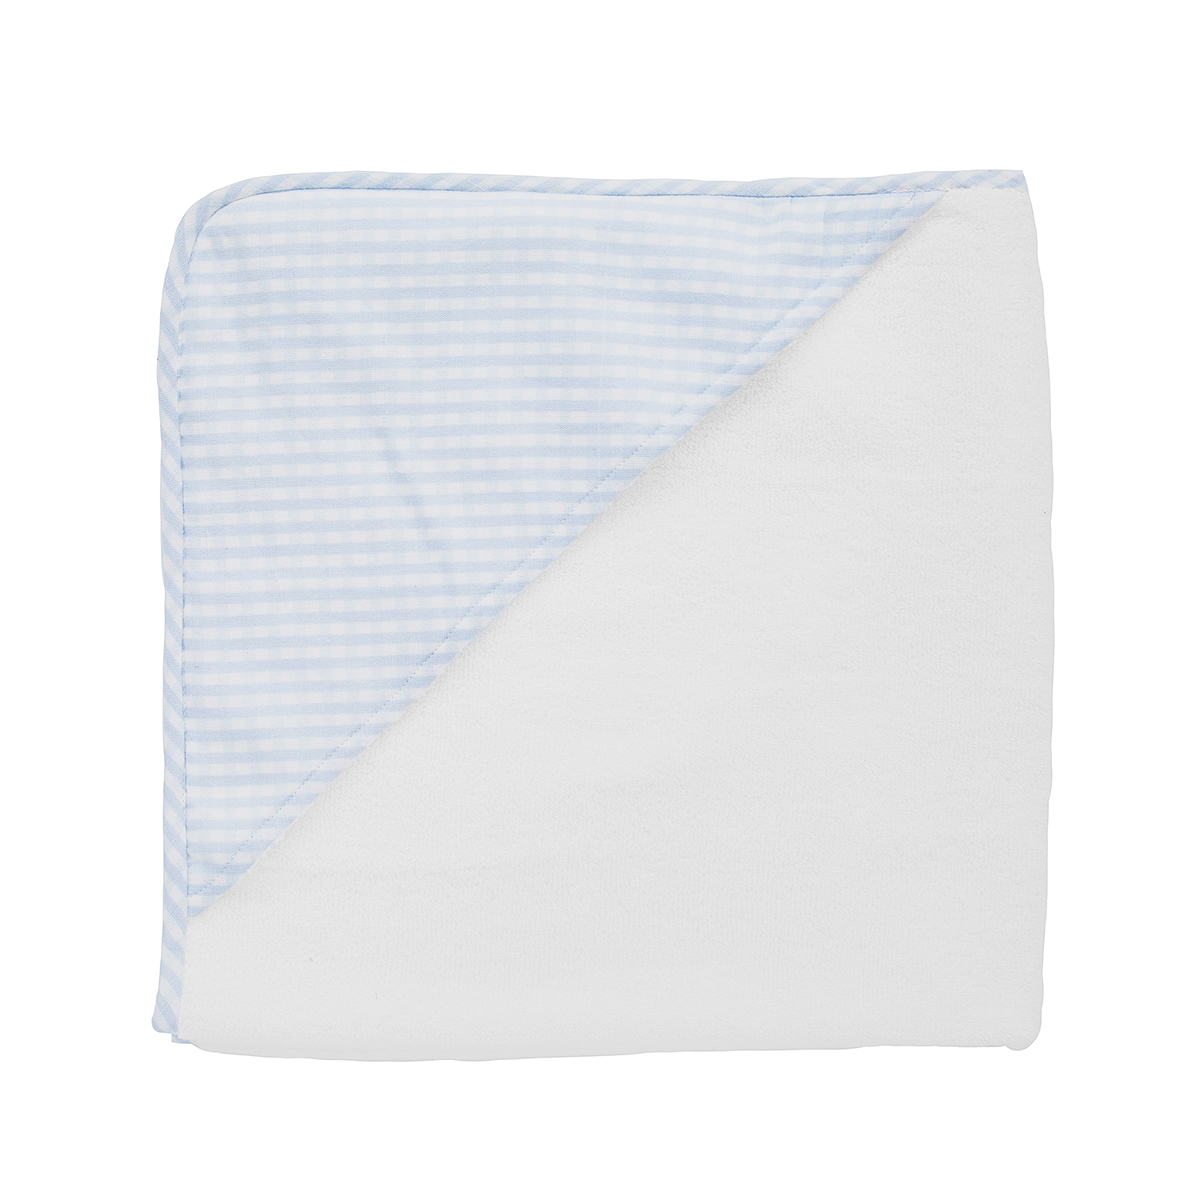 Louelle Hooded Towel-Pale Blue Gingham